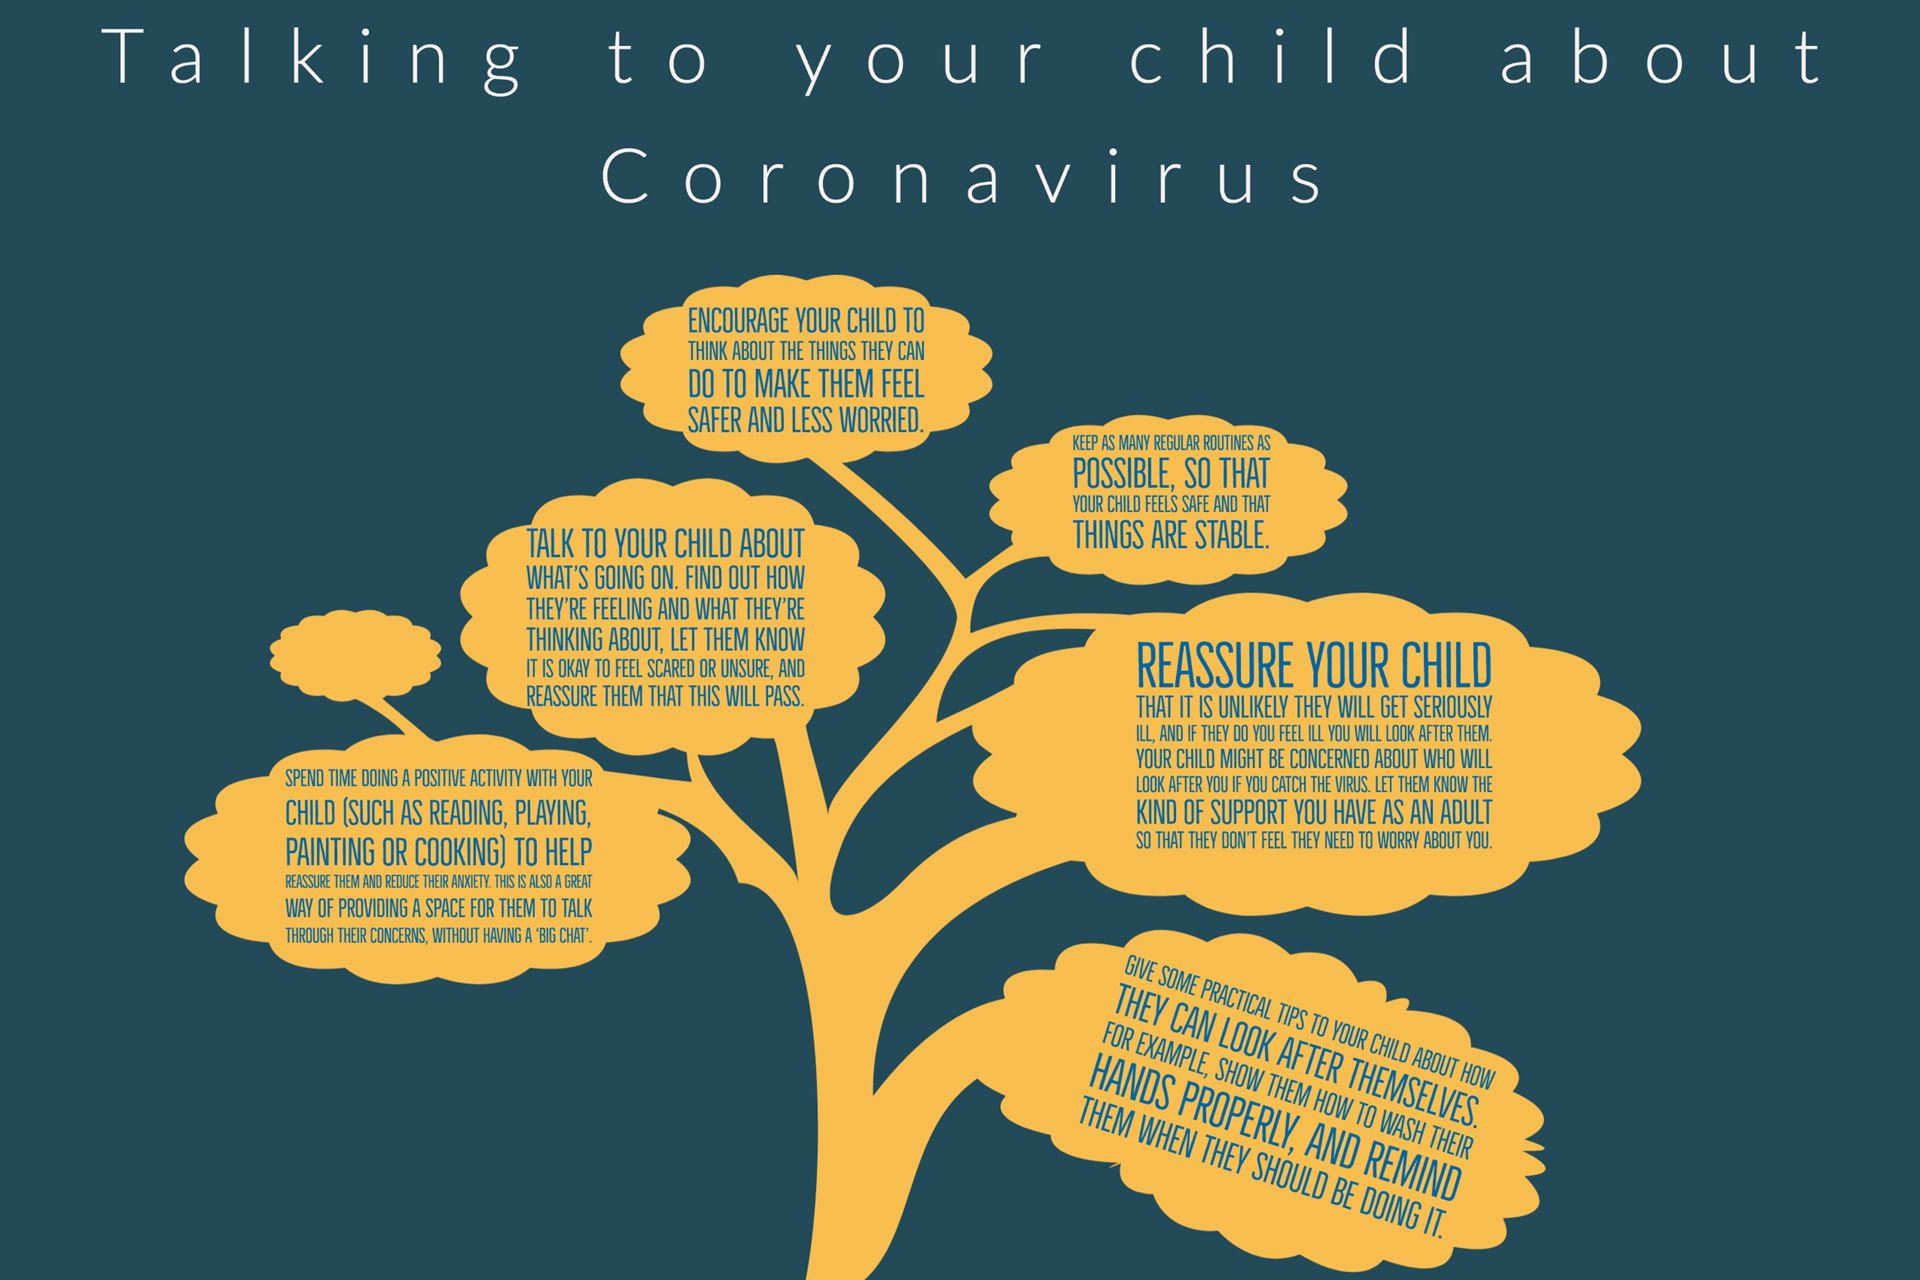 Talking to your child about COVID